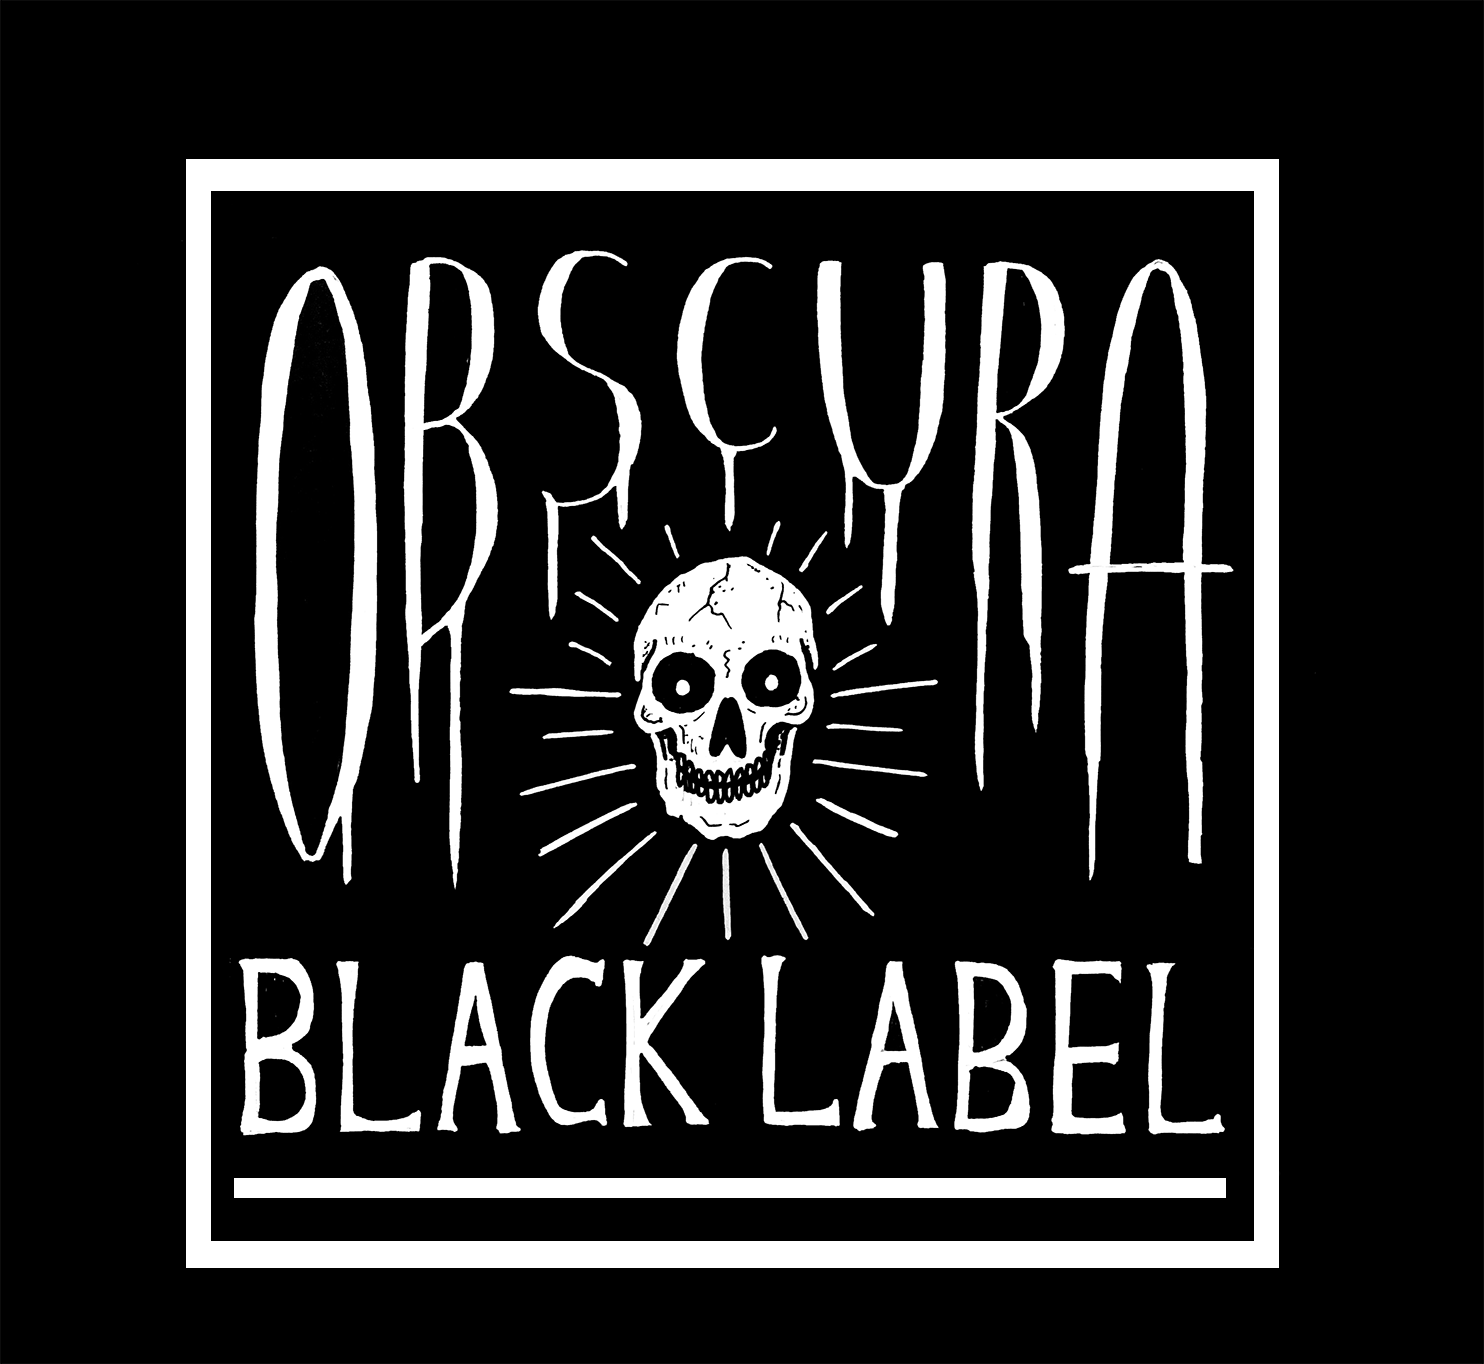 OBSCURA BLACK LABEL